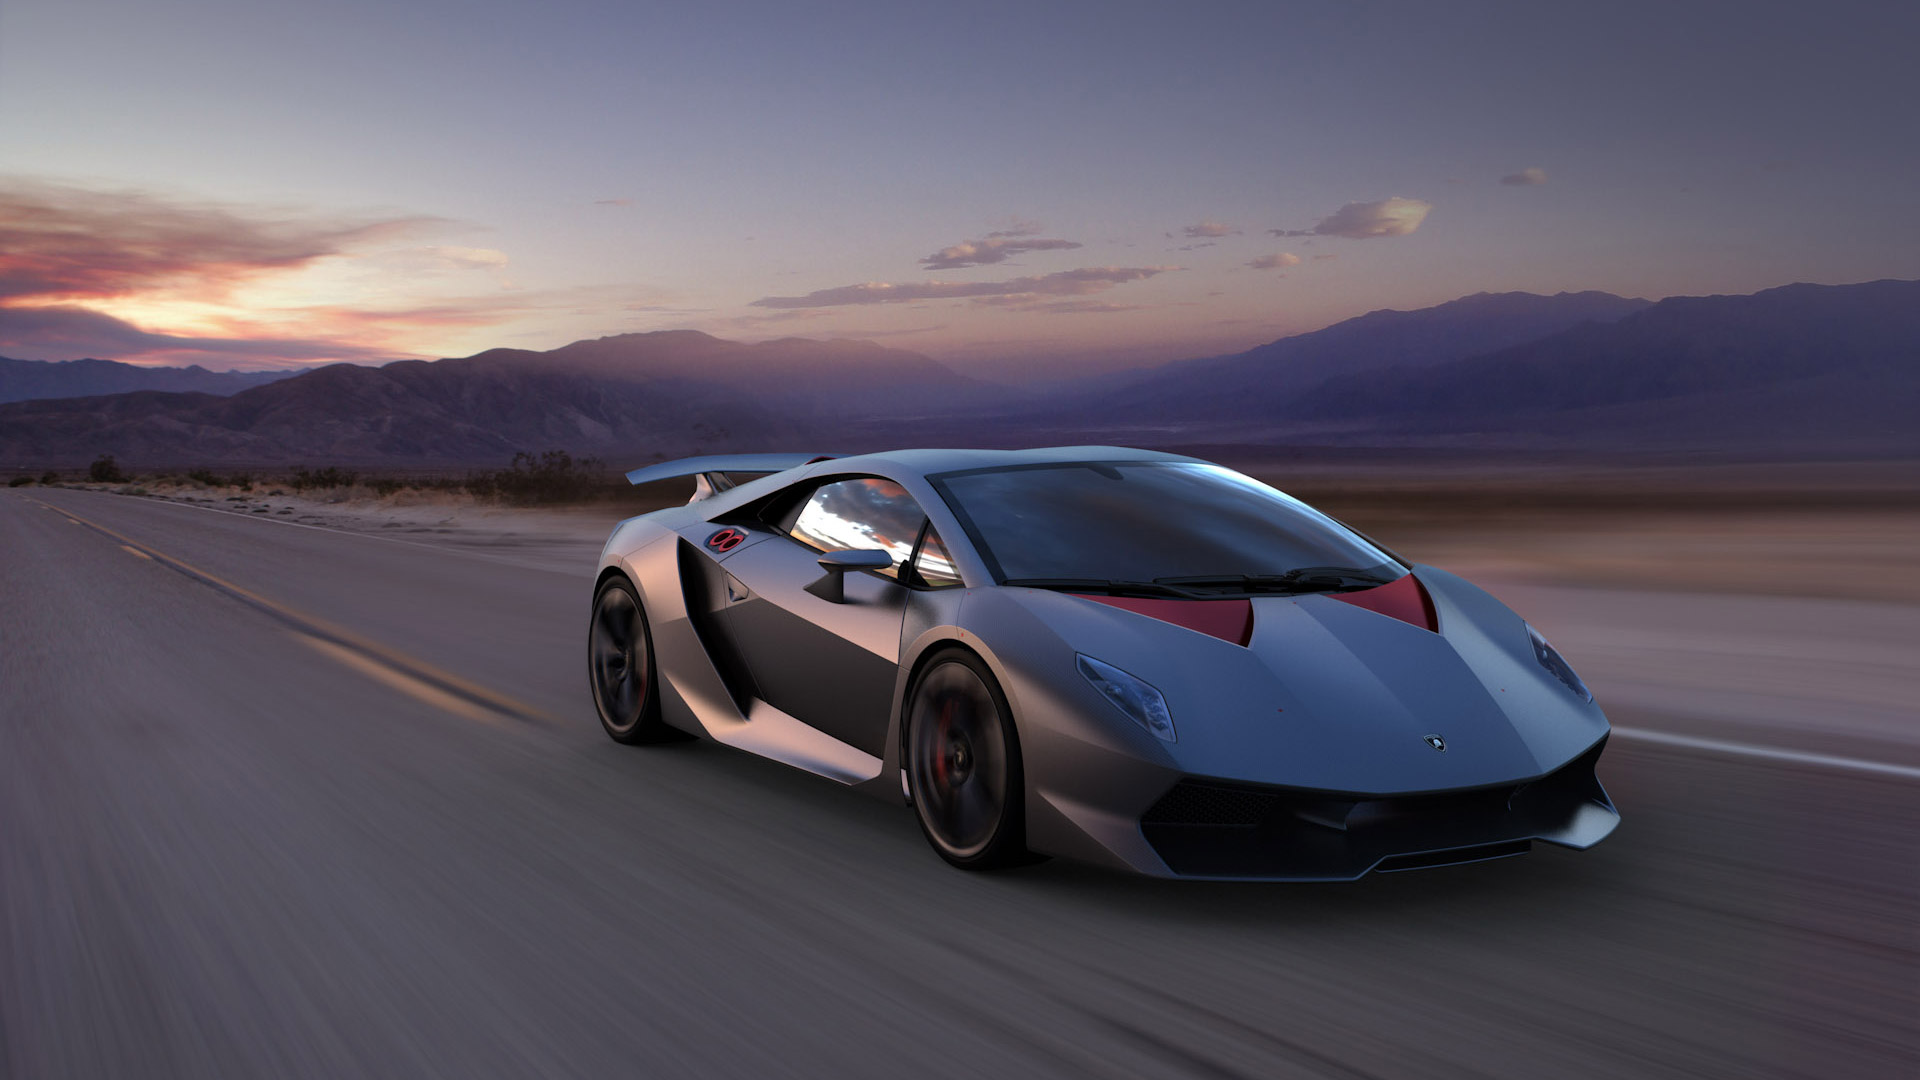 2.5 Million Dollar Lamborghini >> Ultra Rare Lamborghini Sesto Elemento Tears Up The Streets - Moto Networks